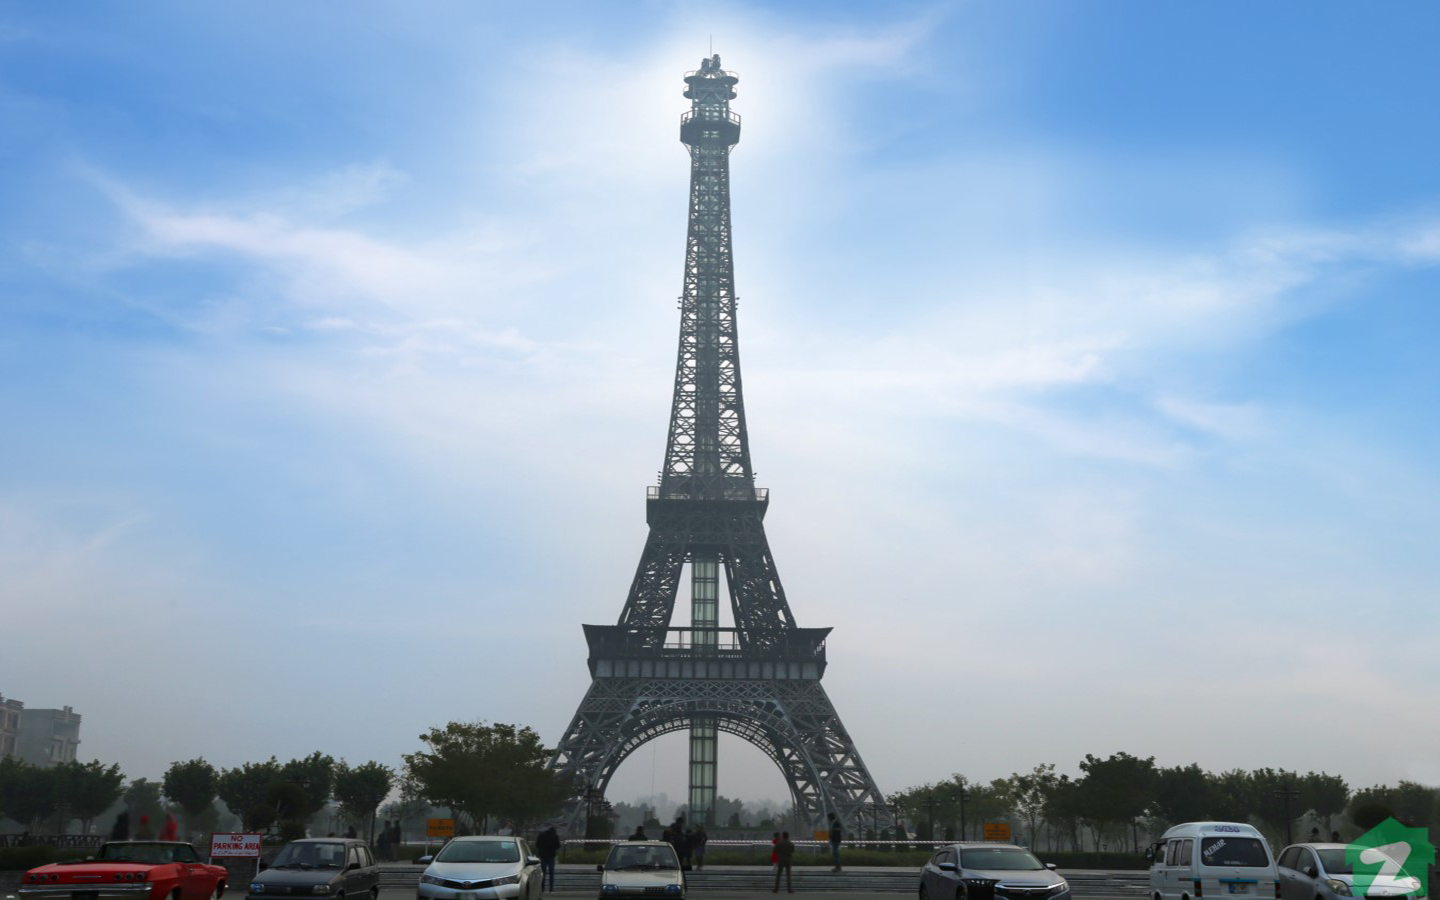 Eiffel Tower Park is a right place to hang out and enjoy tea/coffee in soothing evenings